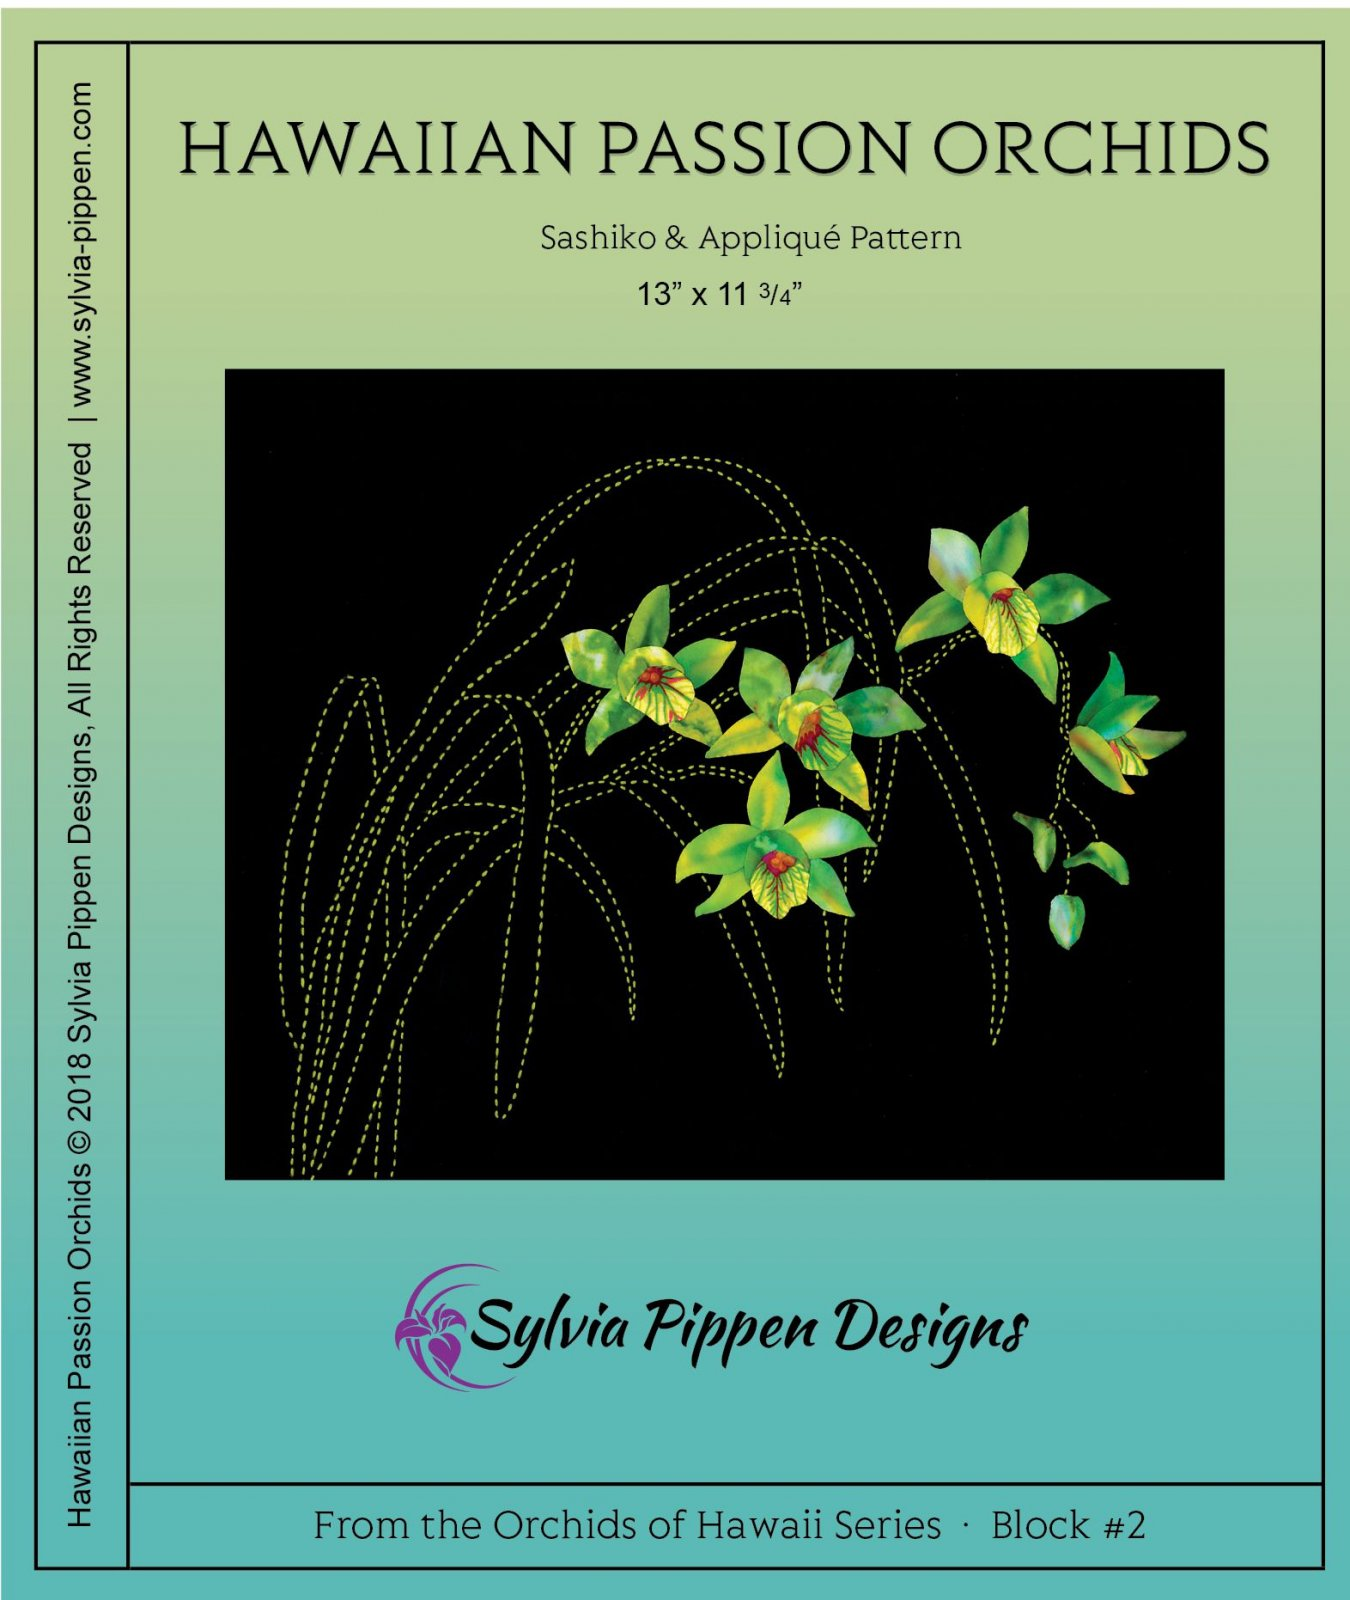 Hawaiian Passion Orchids Pattern from the Orchids of Hawaii Series